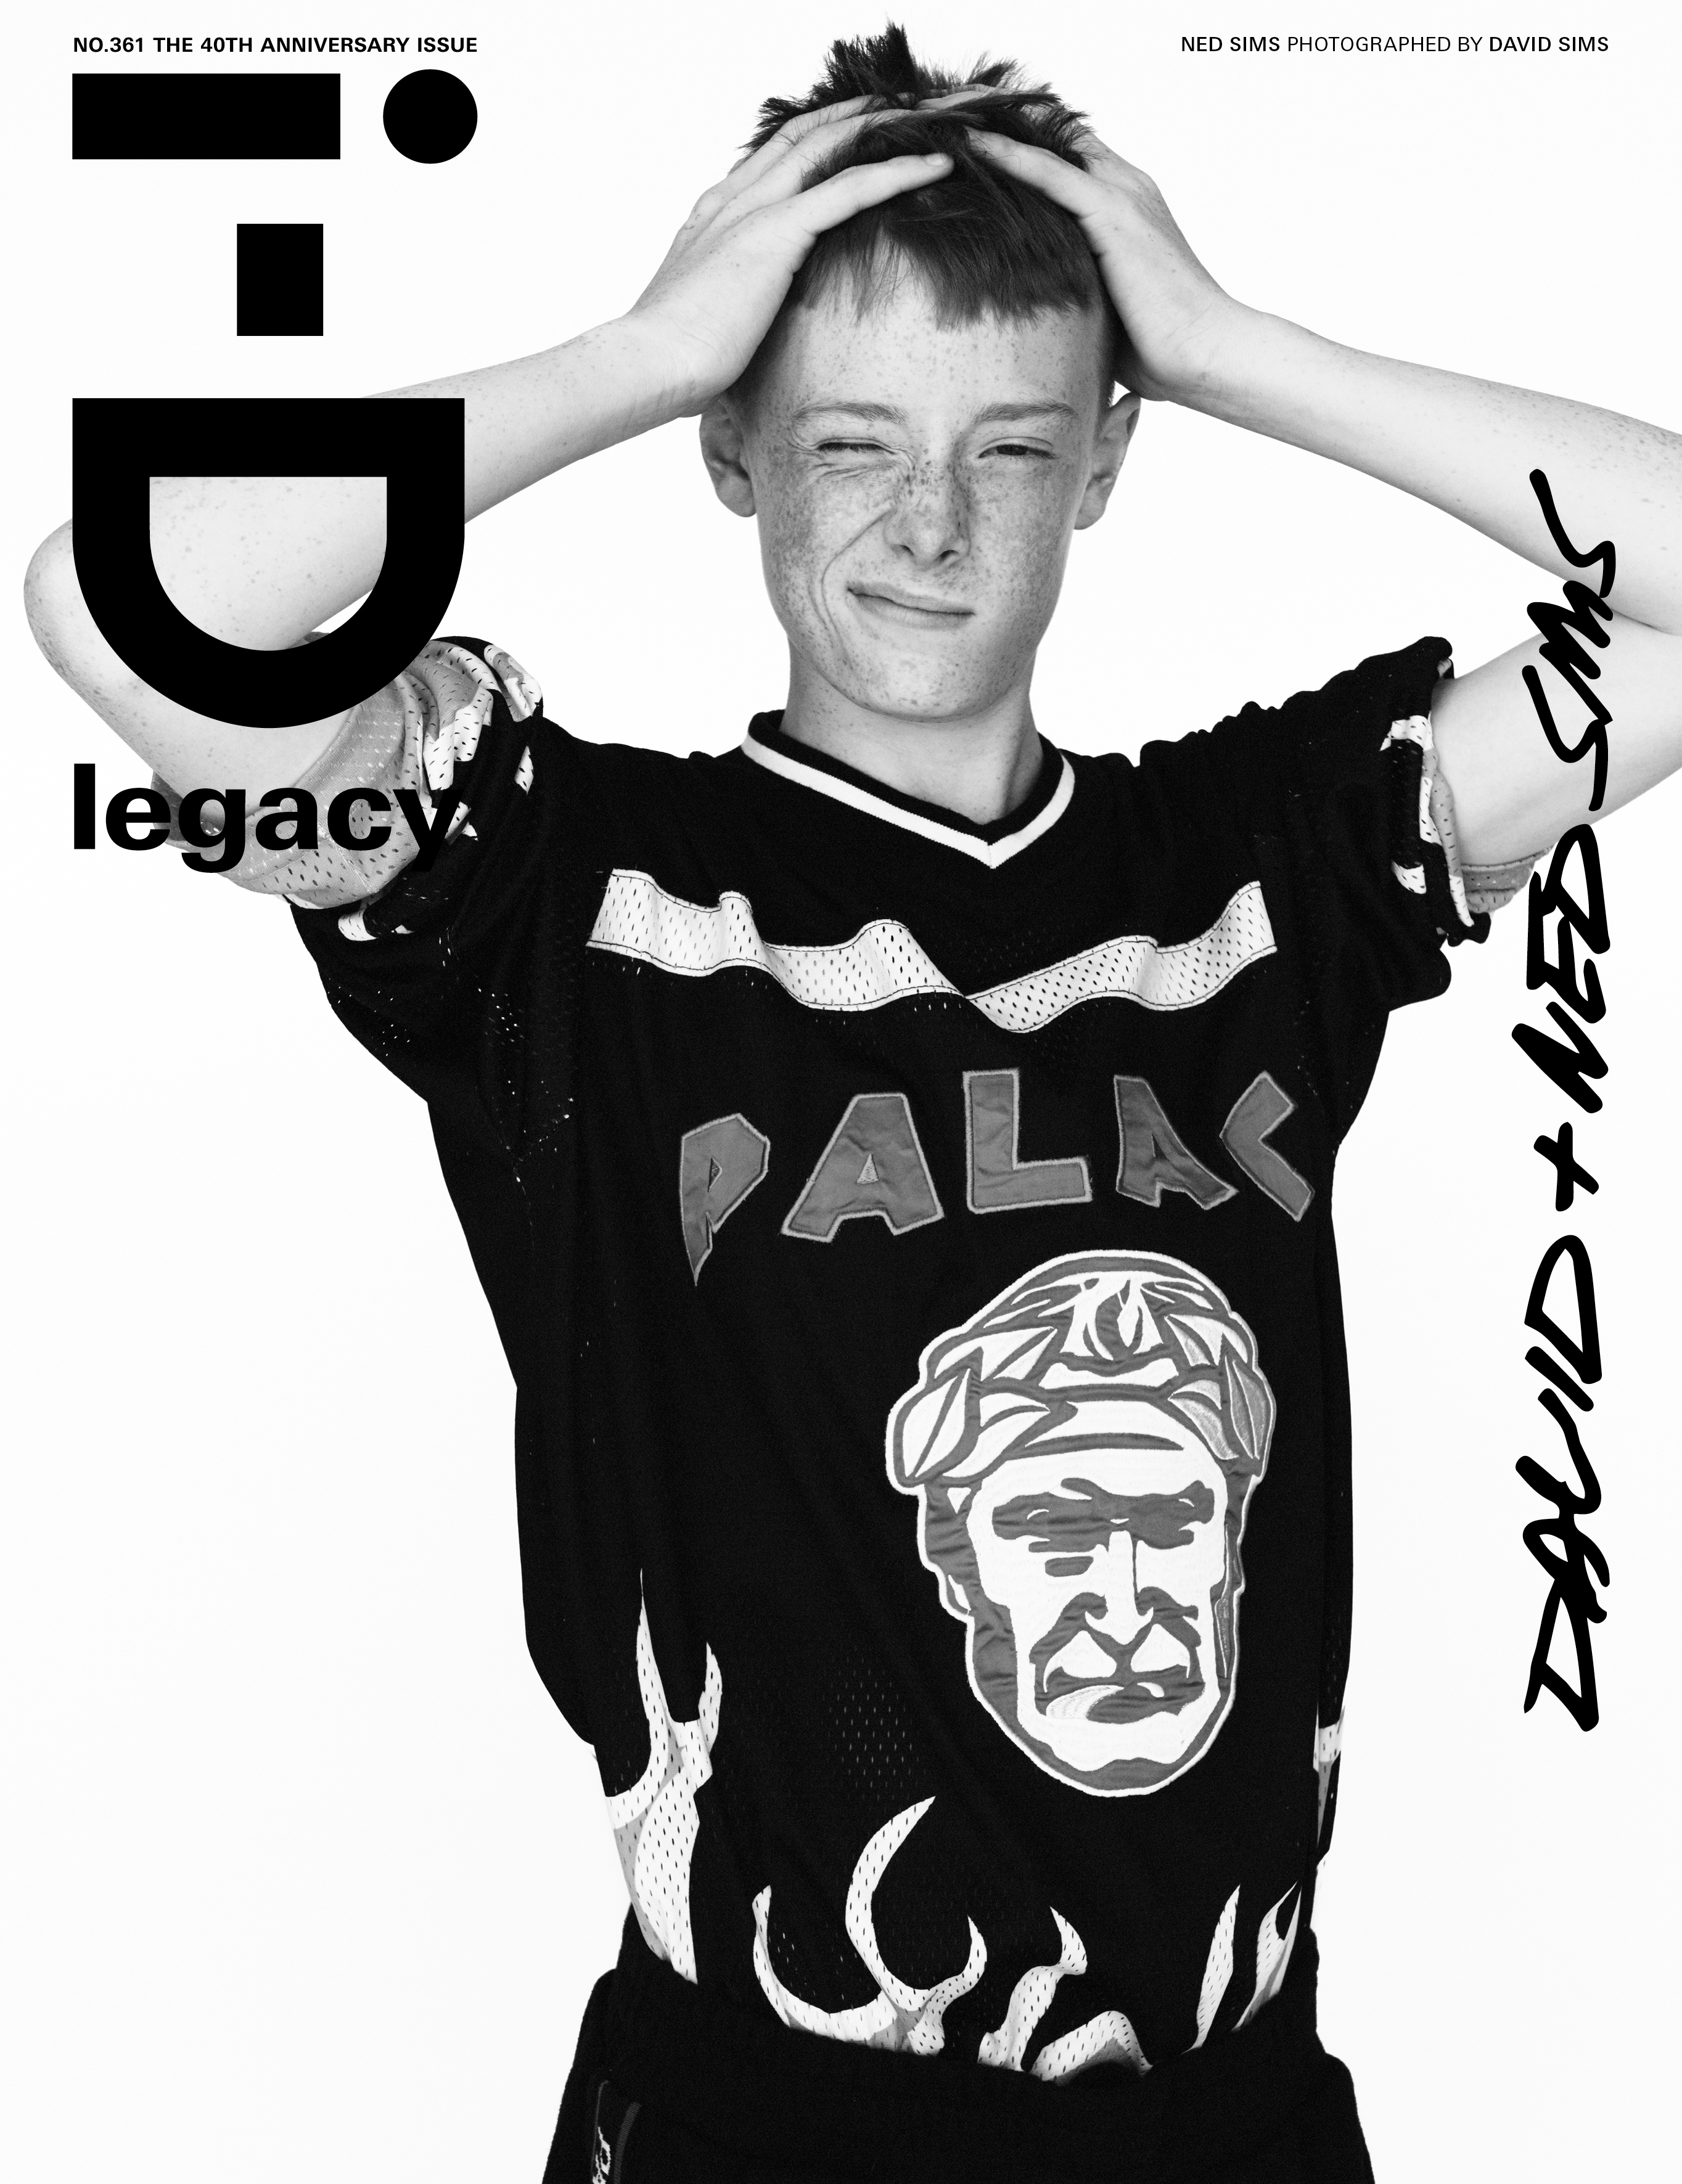 Ned Sims wearing Palace photographed by his father David Sims for the i-D magazine 40th anniversary issue.